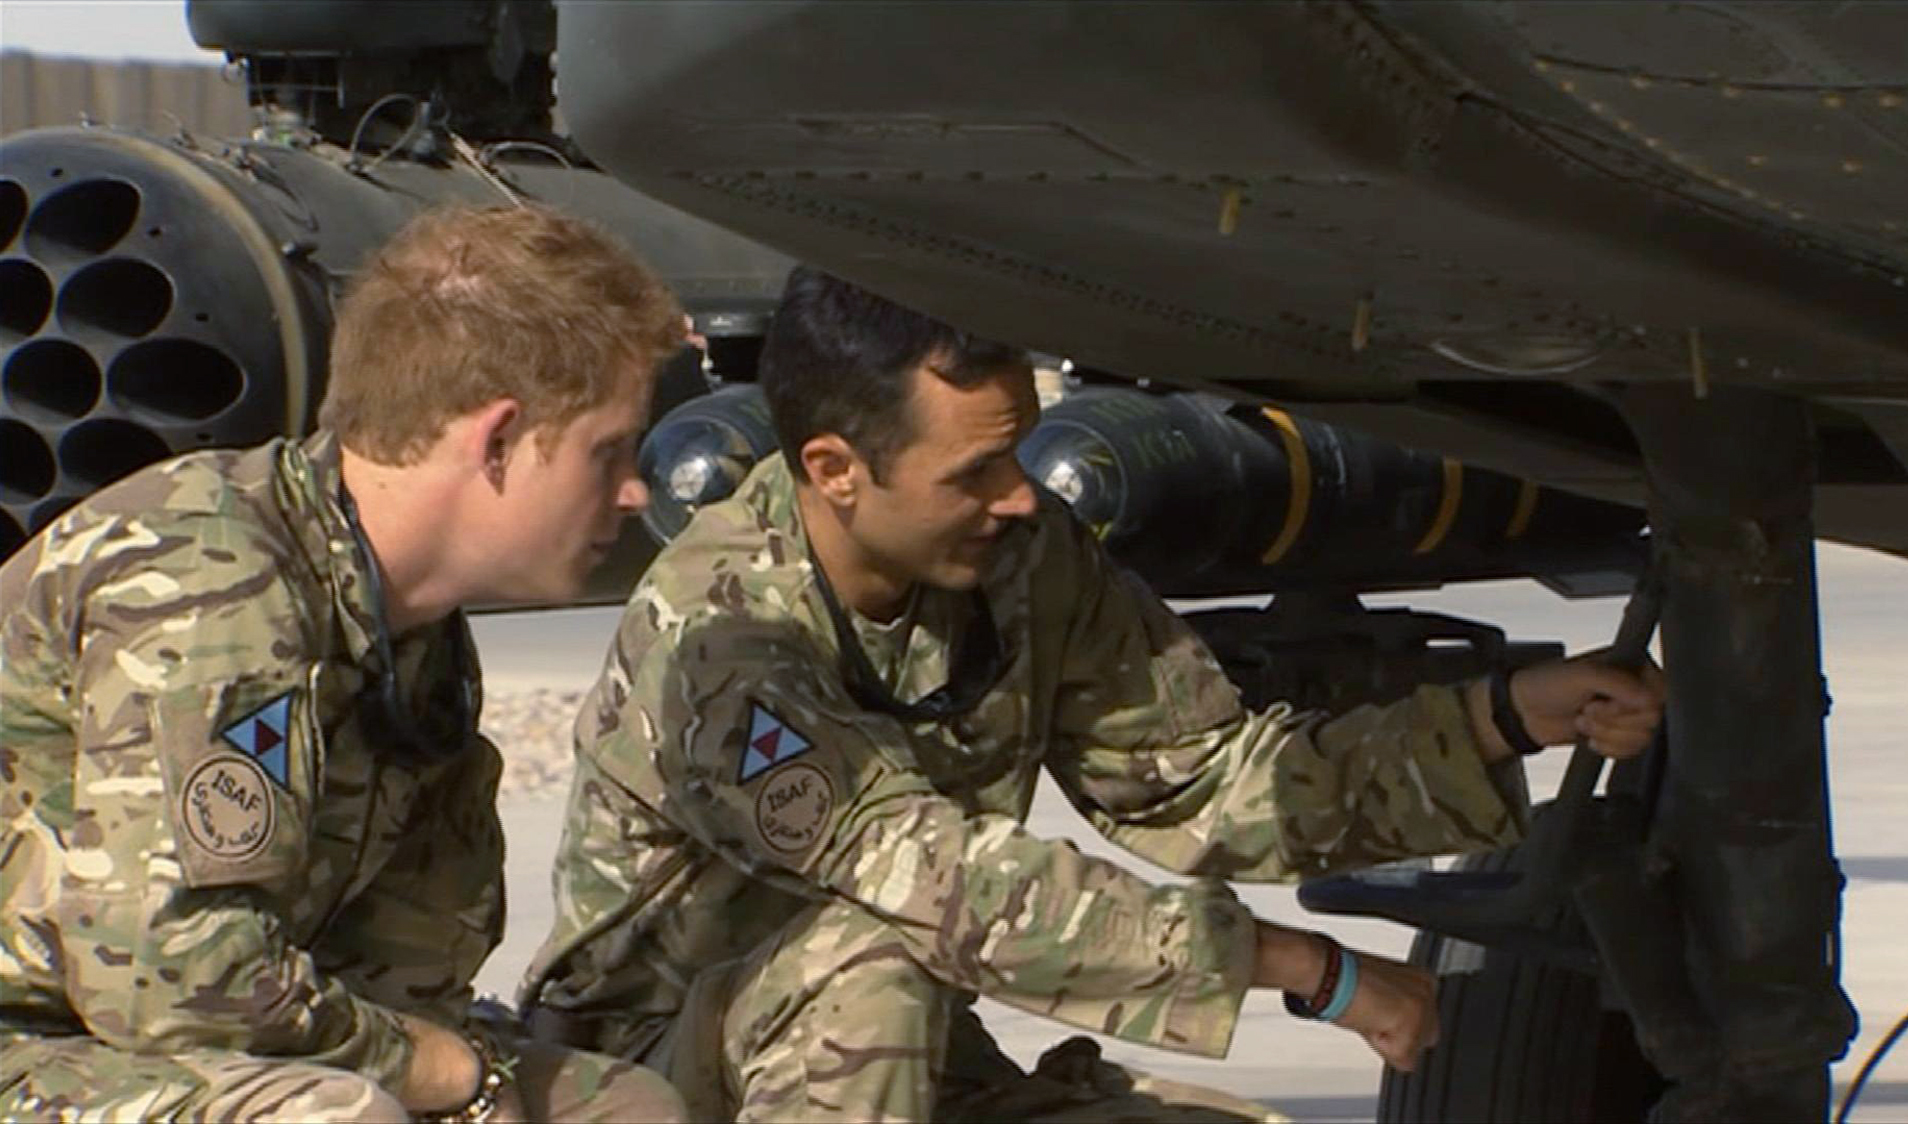 In this image from video, Britain's Prince Harry, left, has a close look at an Apache helicopter, during a tour with a member of his squadron, (name not provided) at Camp Bastion in Afghanistan, Friday Sept. 7, 2012. Prince Harry will be based at Camp Bastion during his tour of duty as a co-pilot gunner, returning to Afghanistan to fly attack helicopters in the fight against the Taliban. (AP Photo/TV Pool)